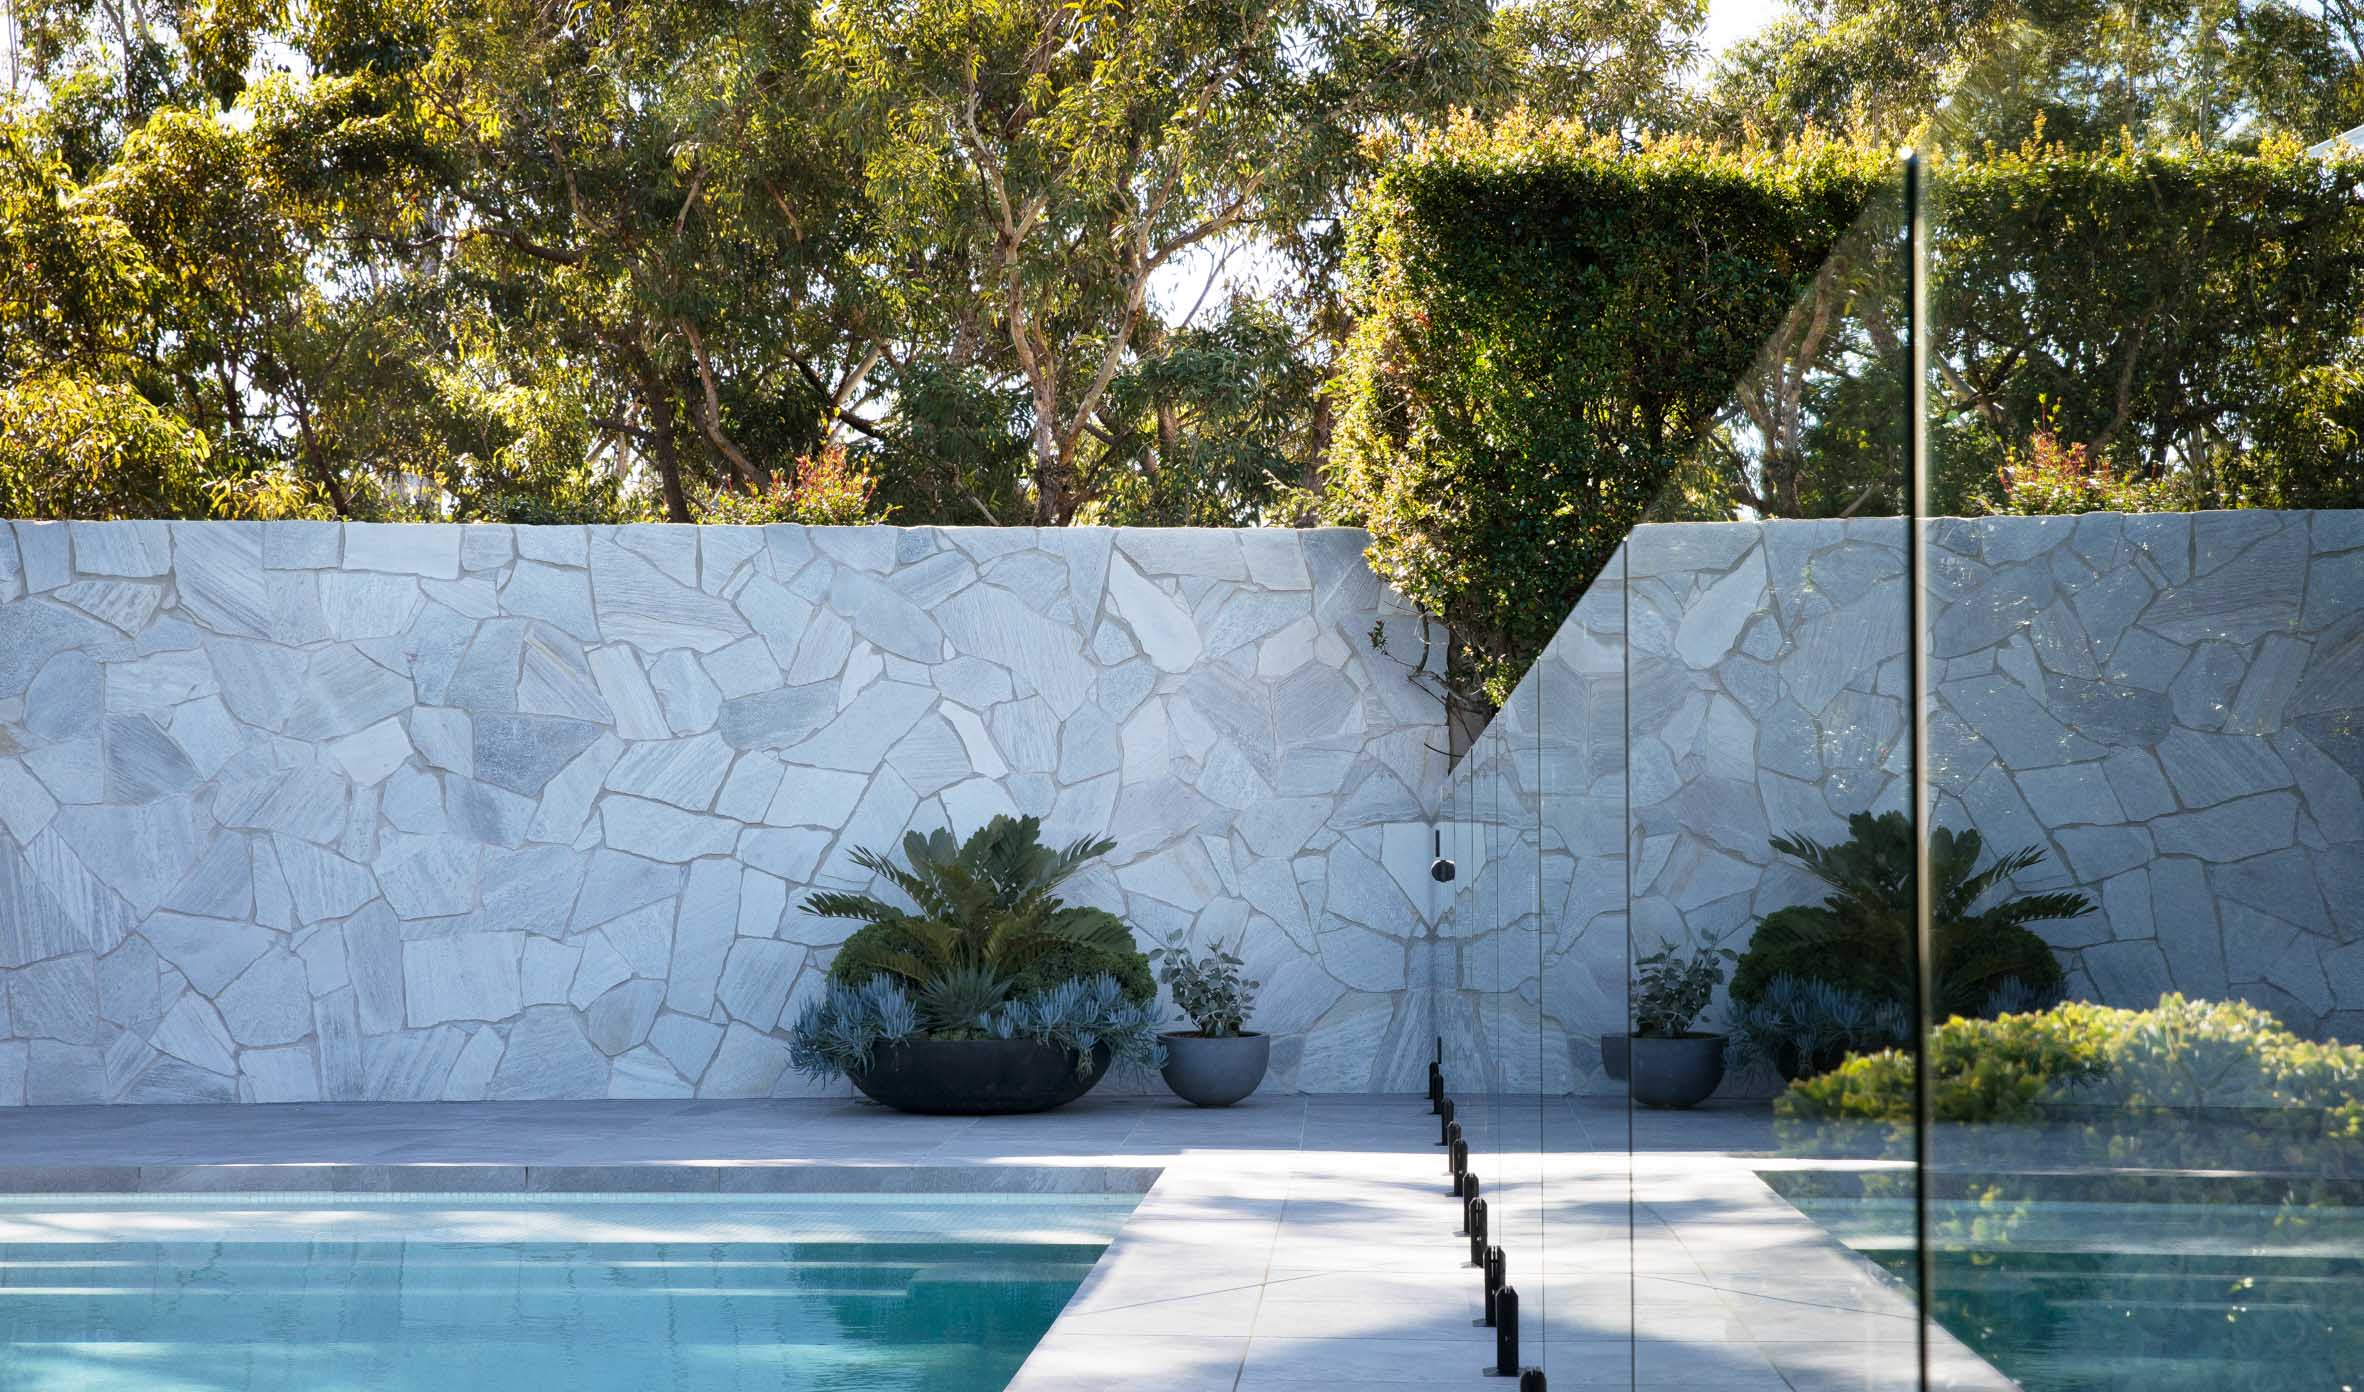 Wall-Cladding-and-Stacked-Stones Thumbnails wall-cladding-and-stacked-stones-05